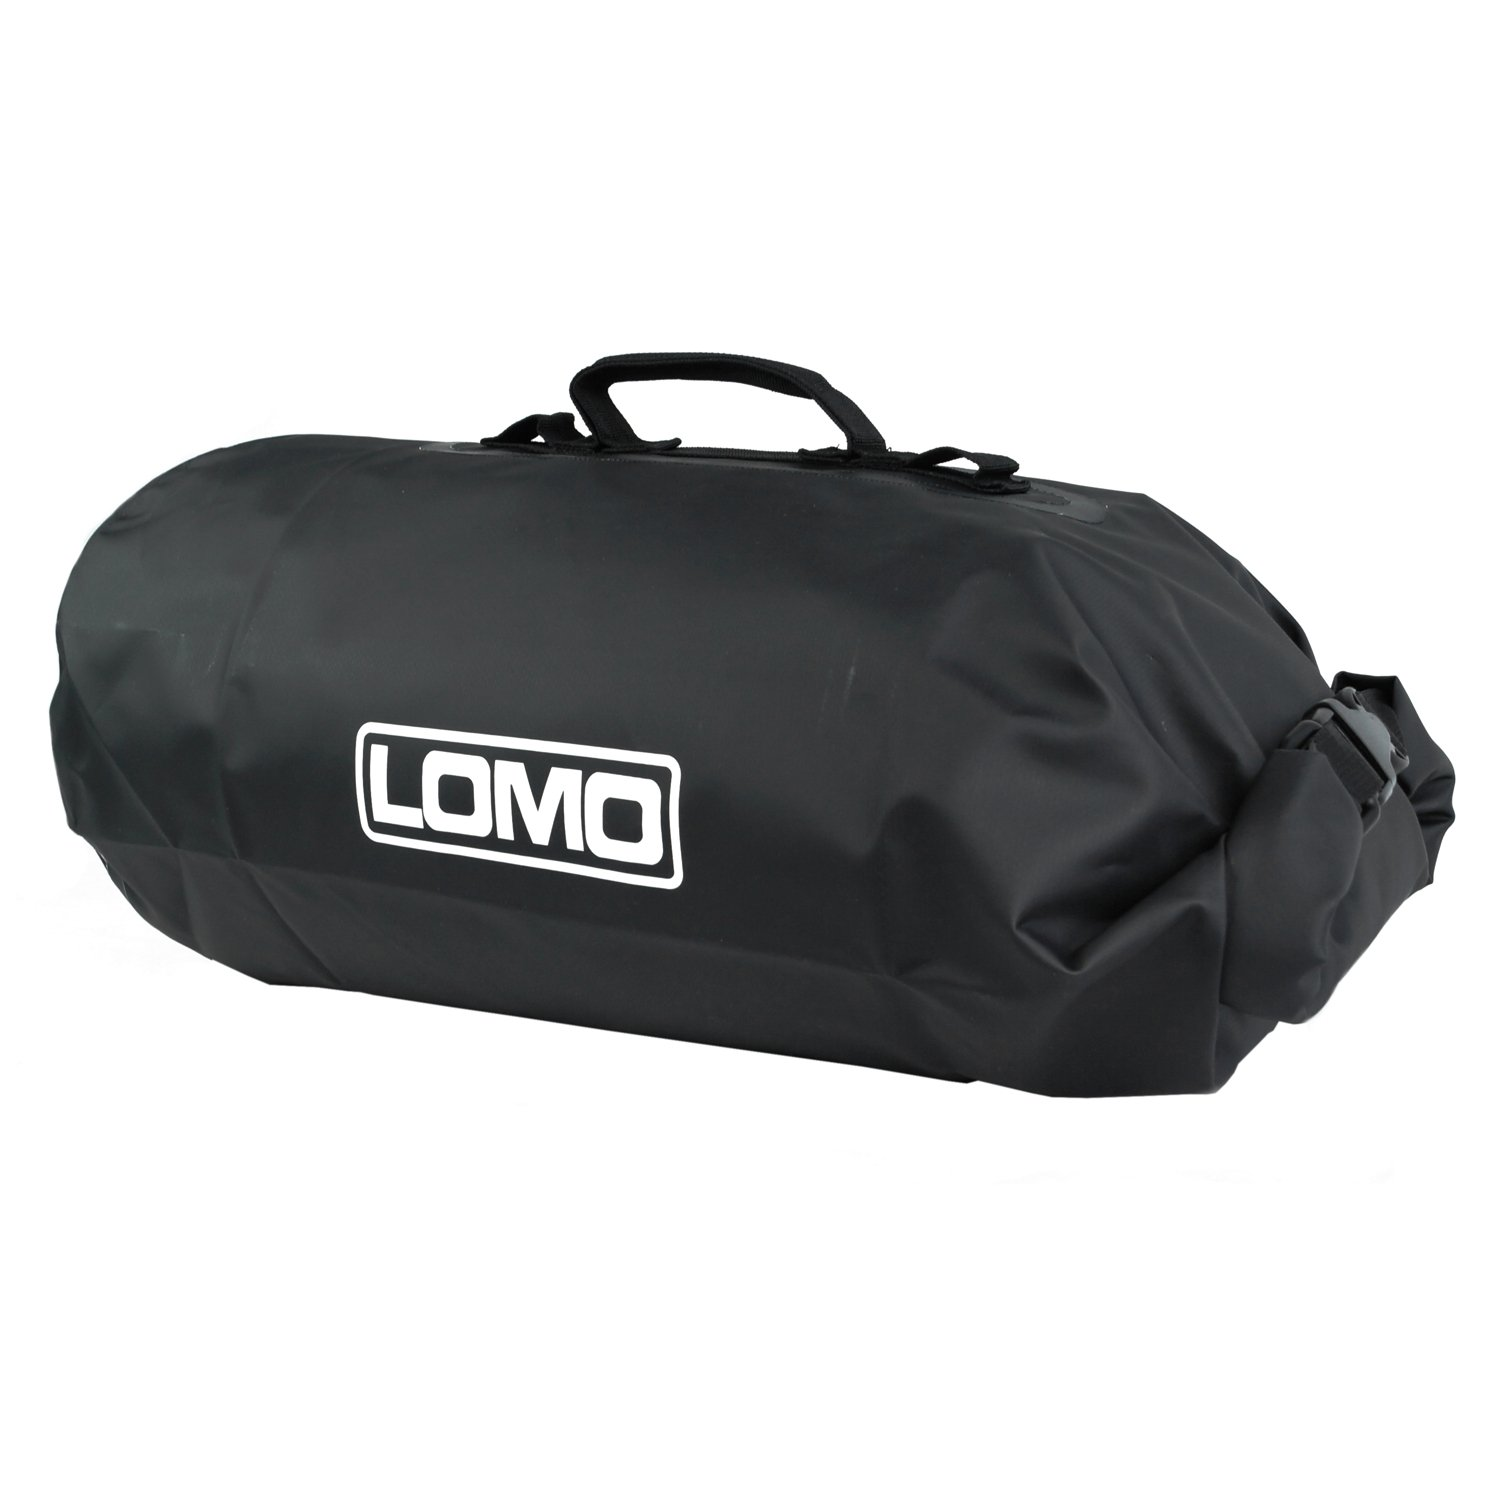 Lomo 20L Motorcycle Drybag - Motorbike Roll Top Bag